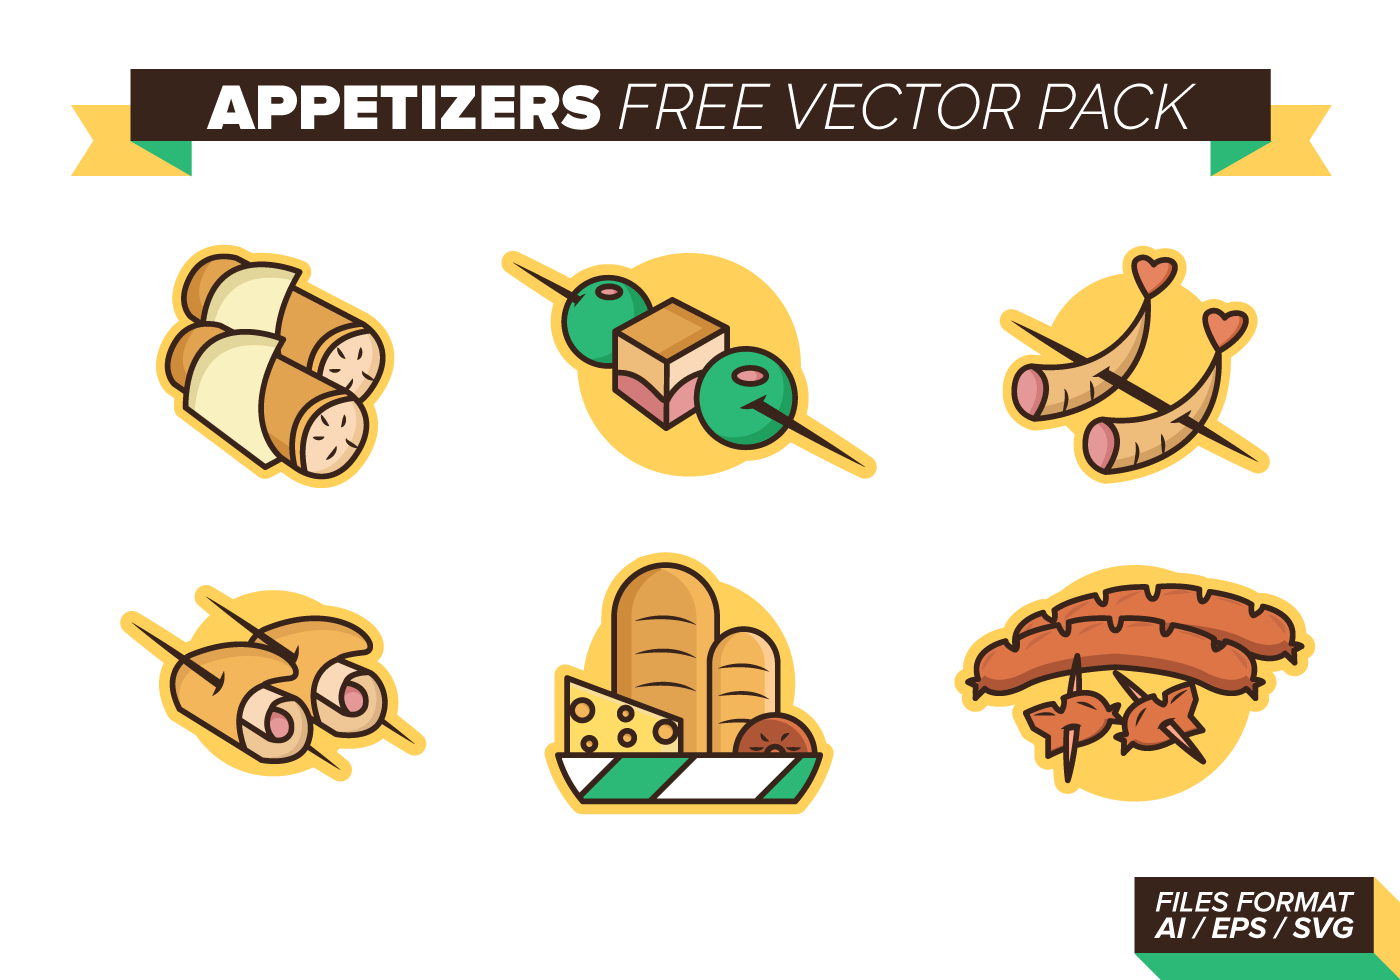 Appetizers free vector pack download free vector art for Canape vector download